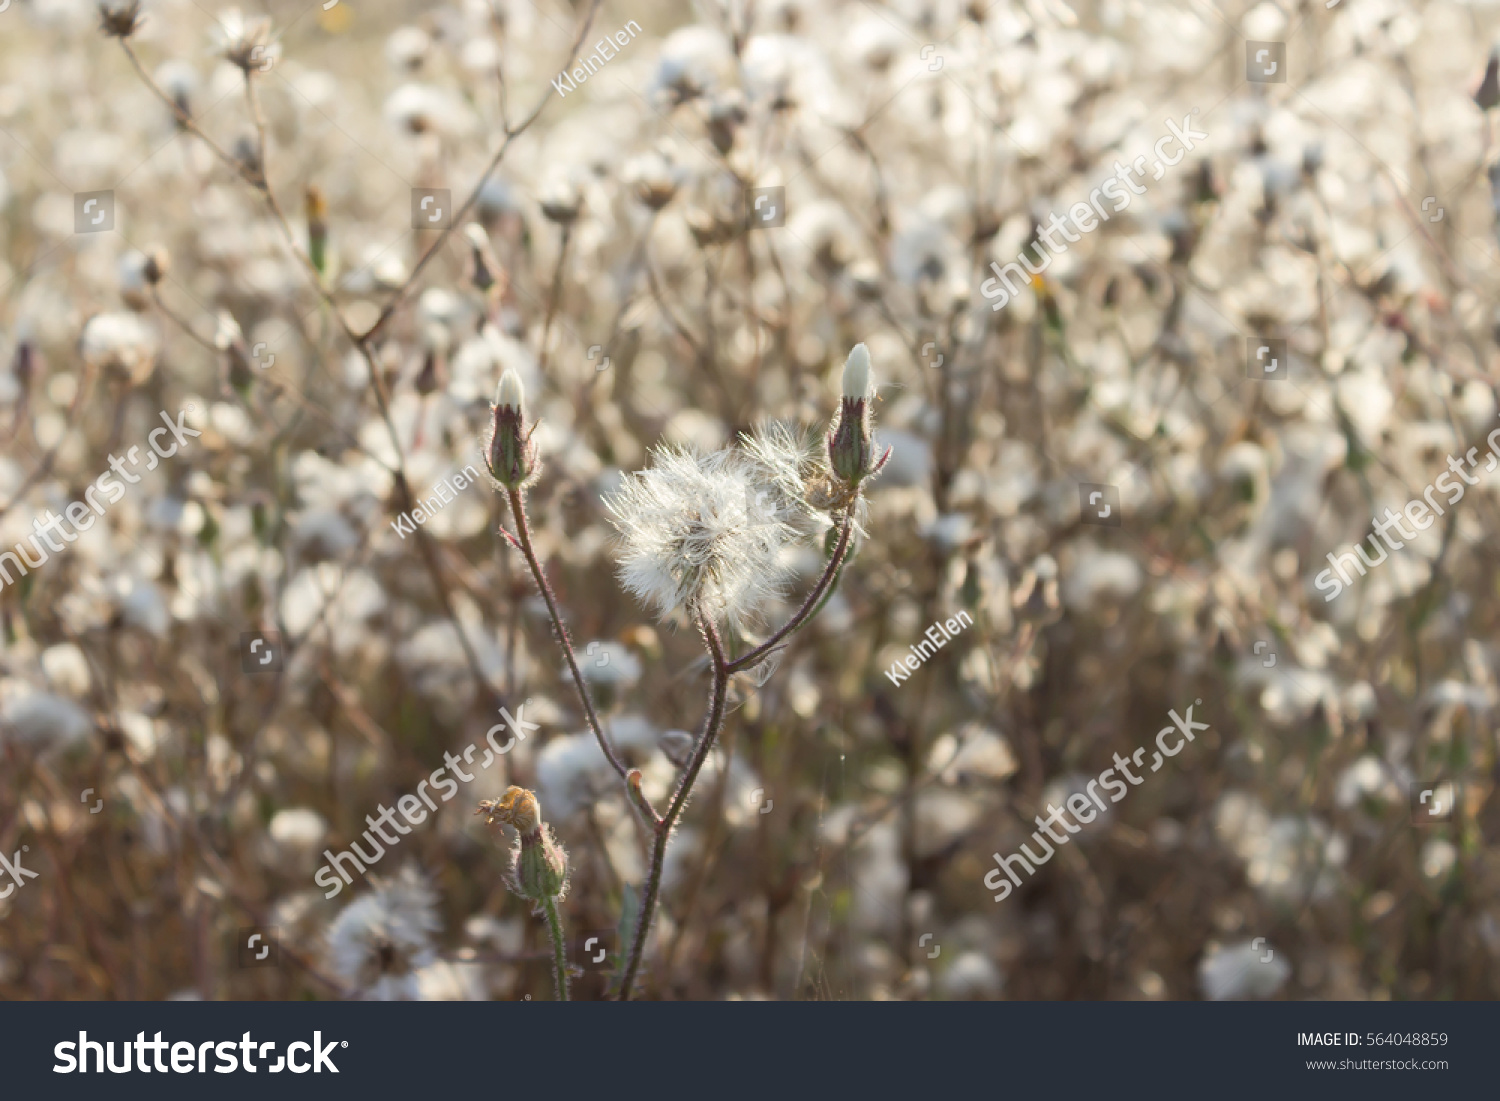 Fluffy sow thistle, hare thistle, seed heads, natural background #564048859